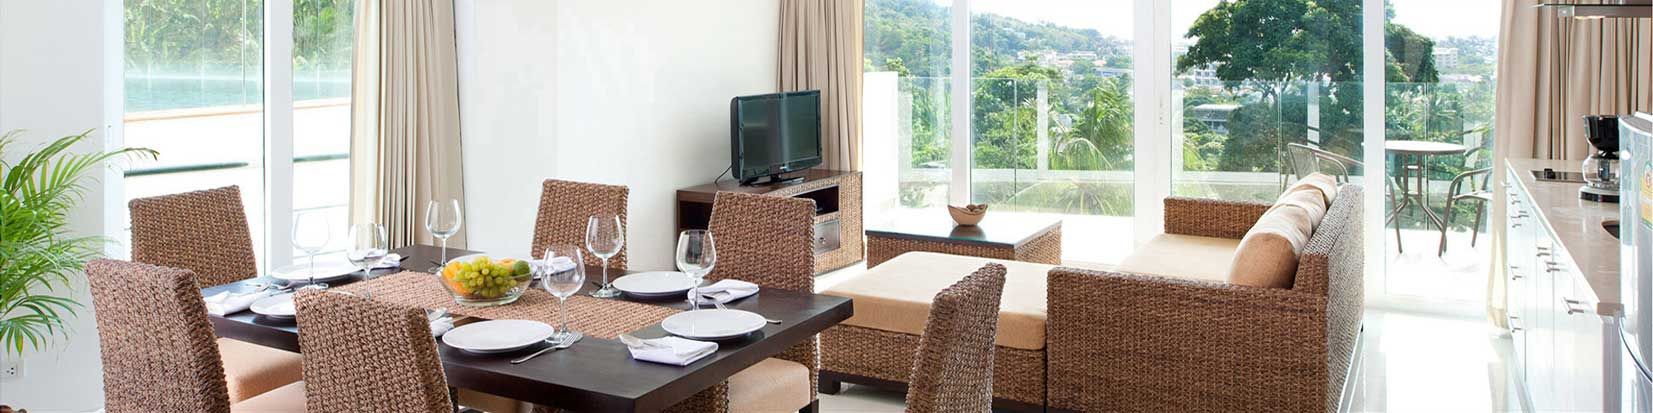 Rental Apartment in Phuket